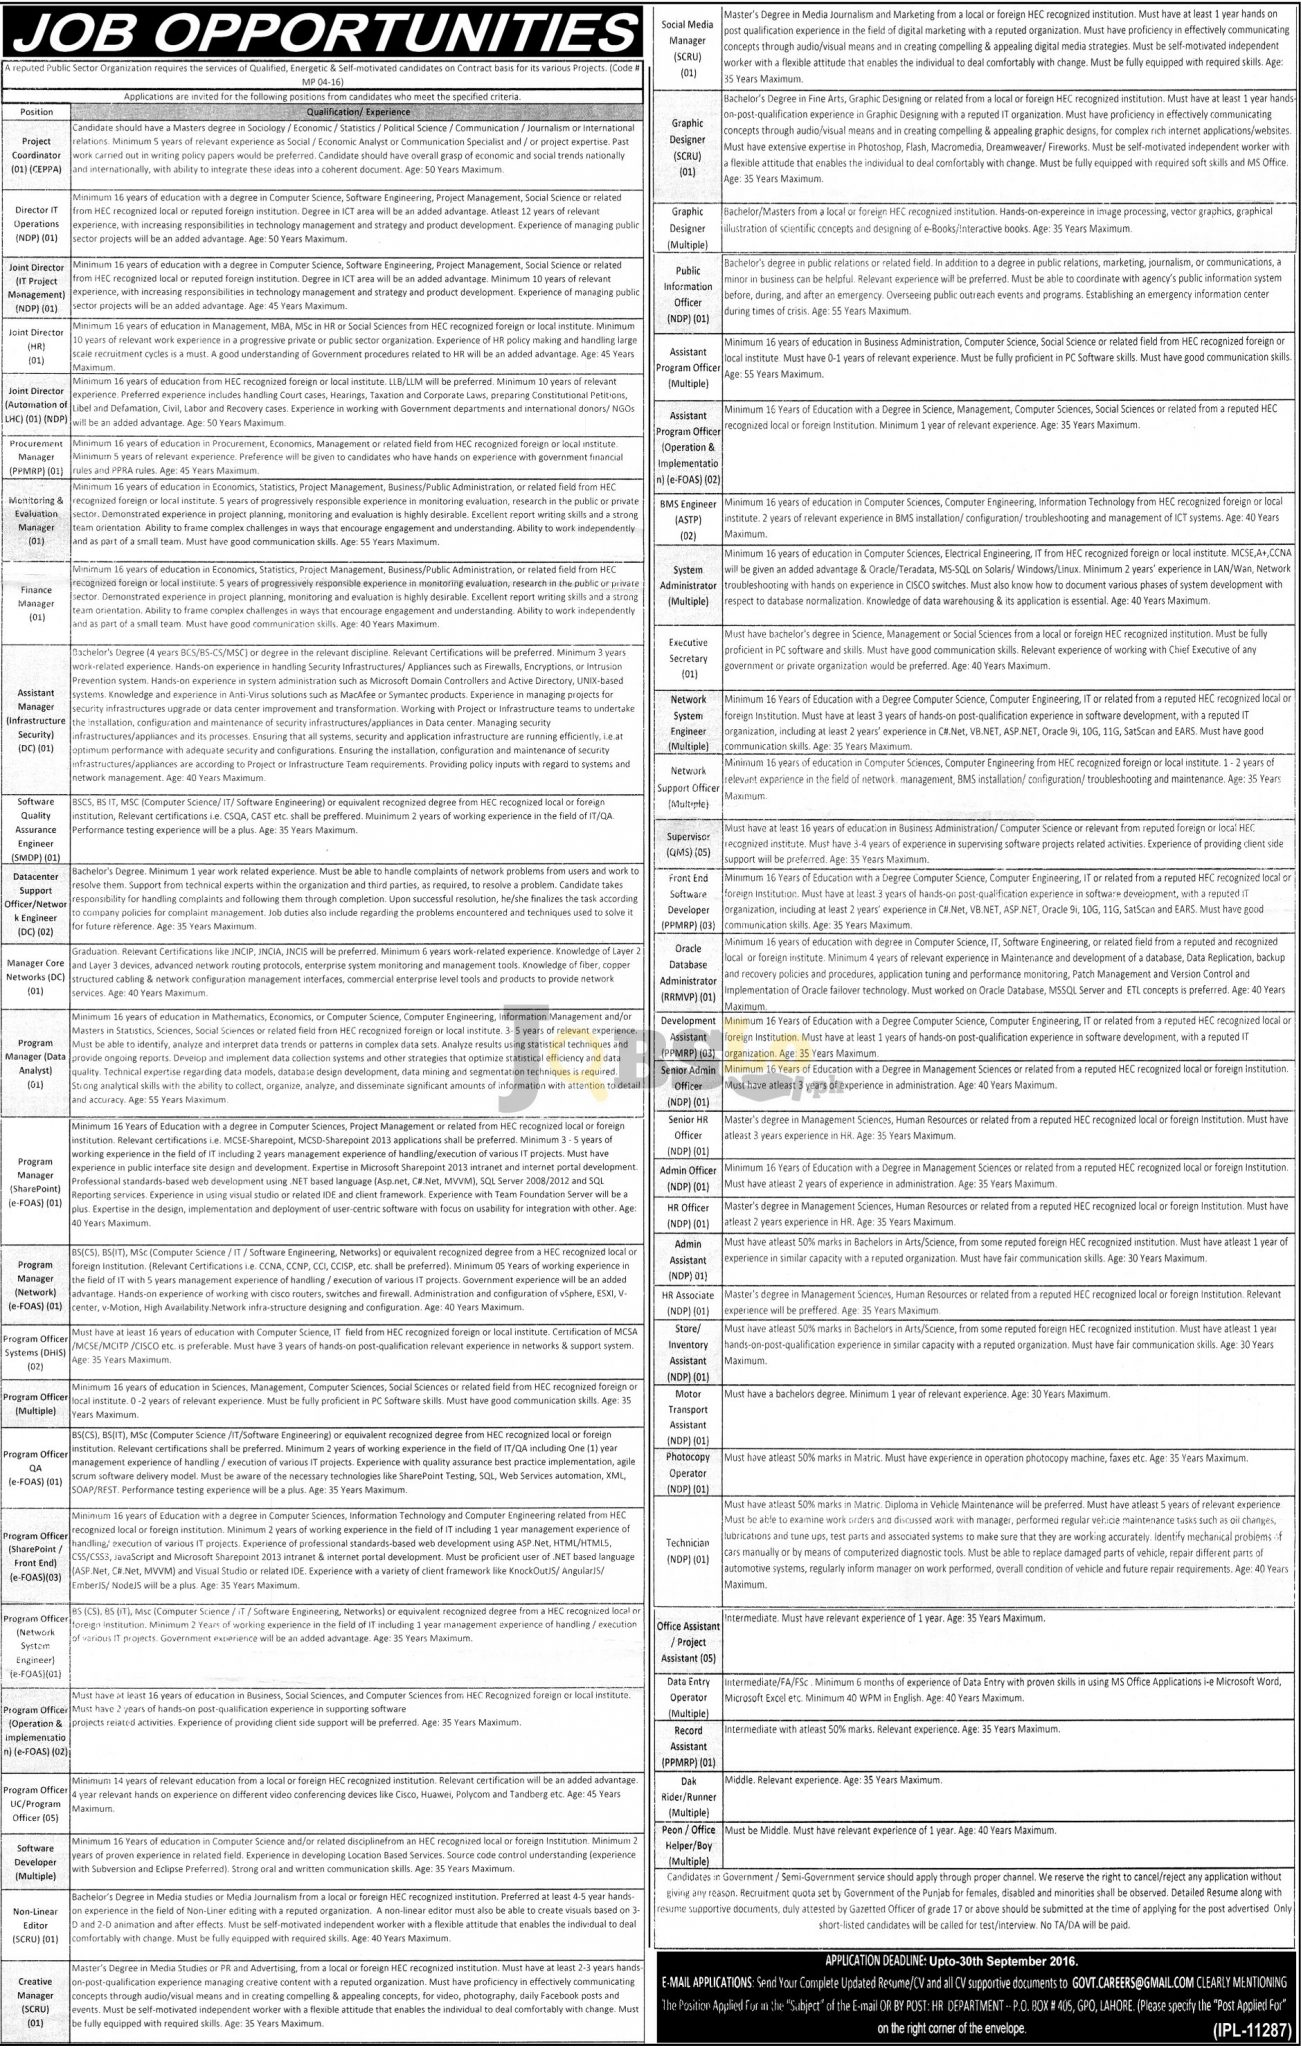 Public Sector Organization Lahore Jobs Sep 2016 Latest